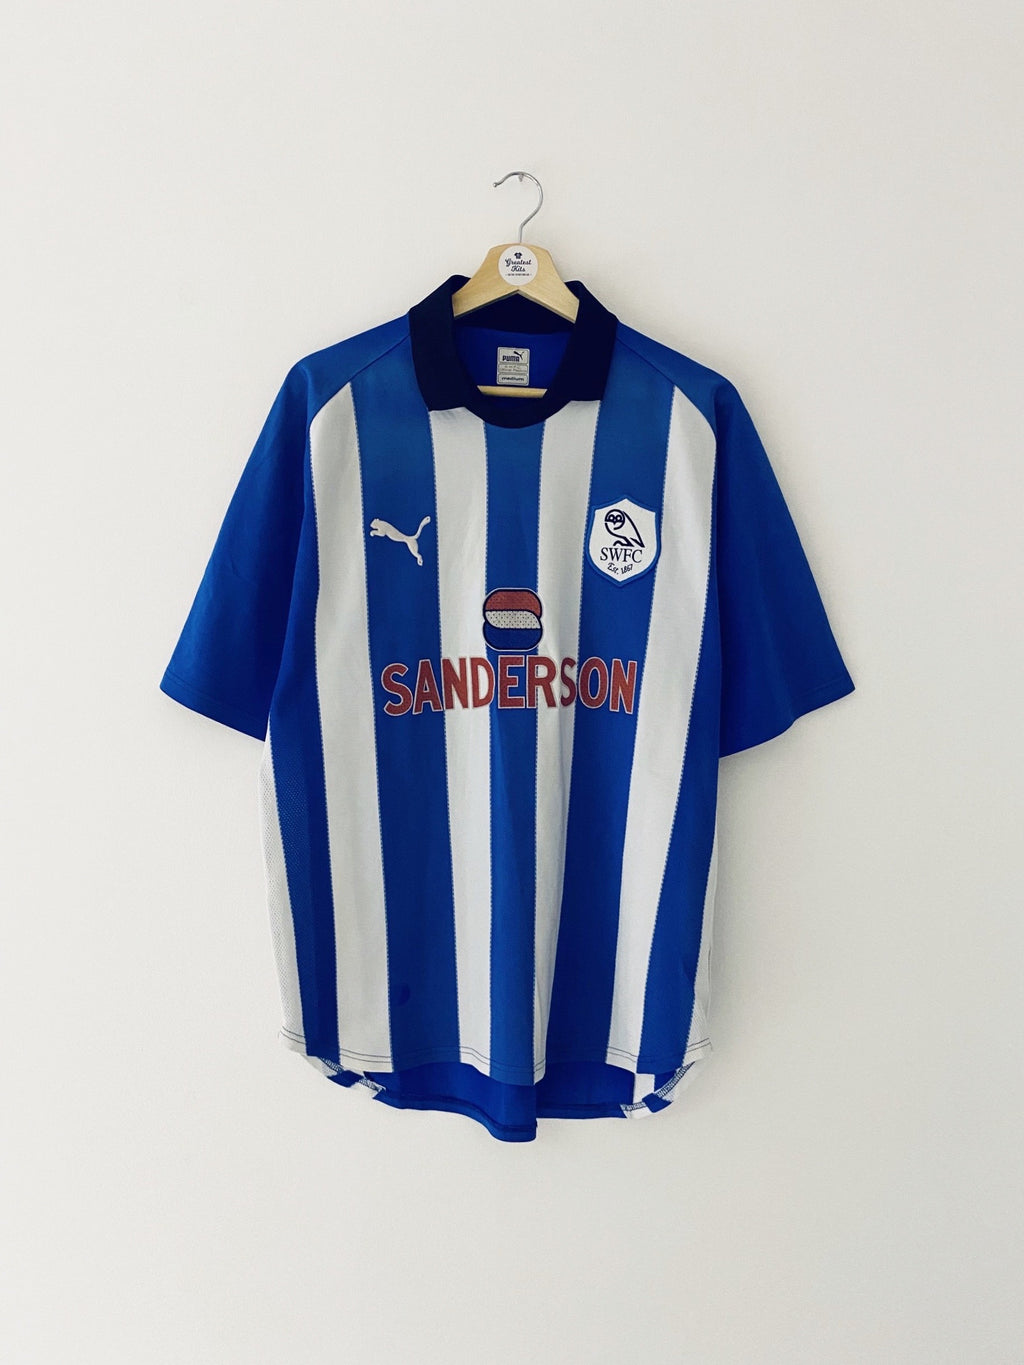 1999/00 Sheffield Wednesday Home Shirt (M) 8/10